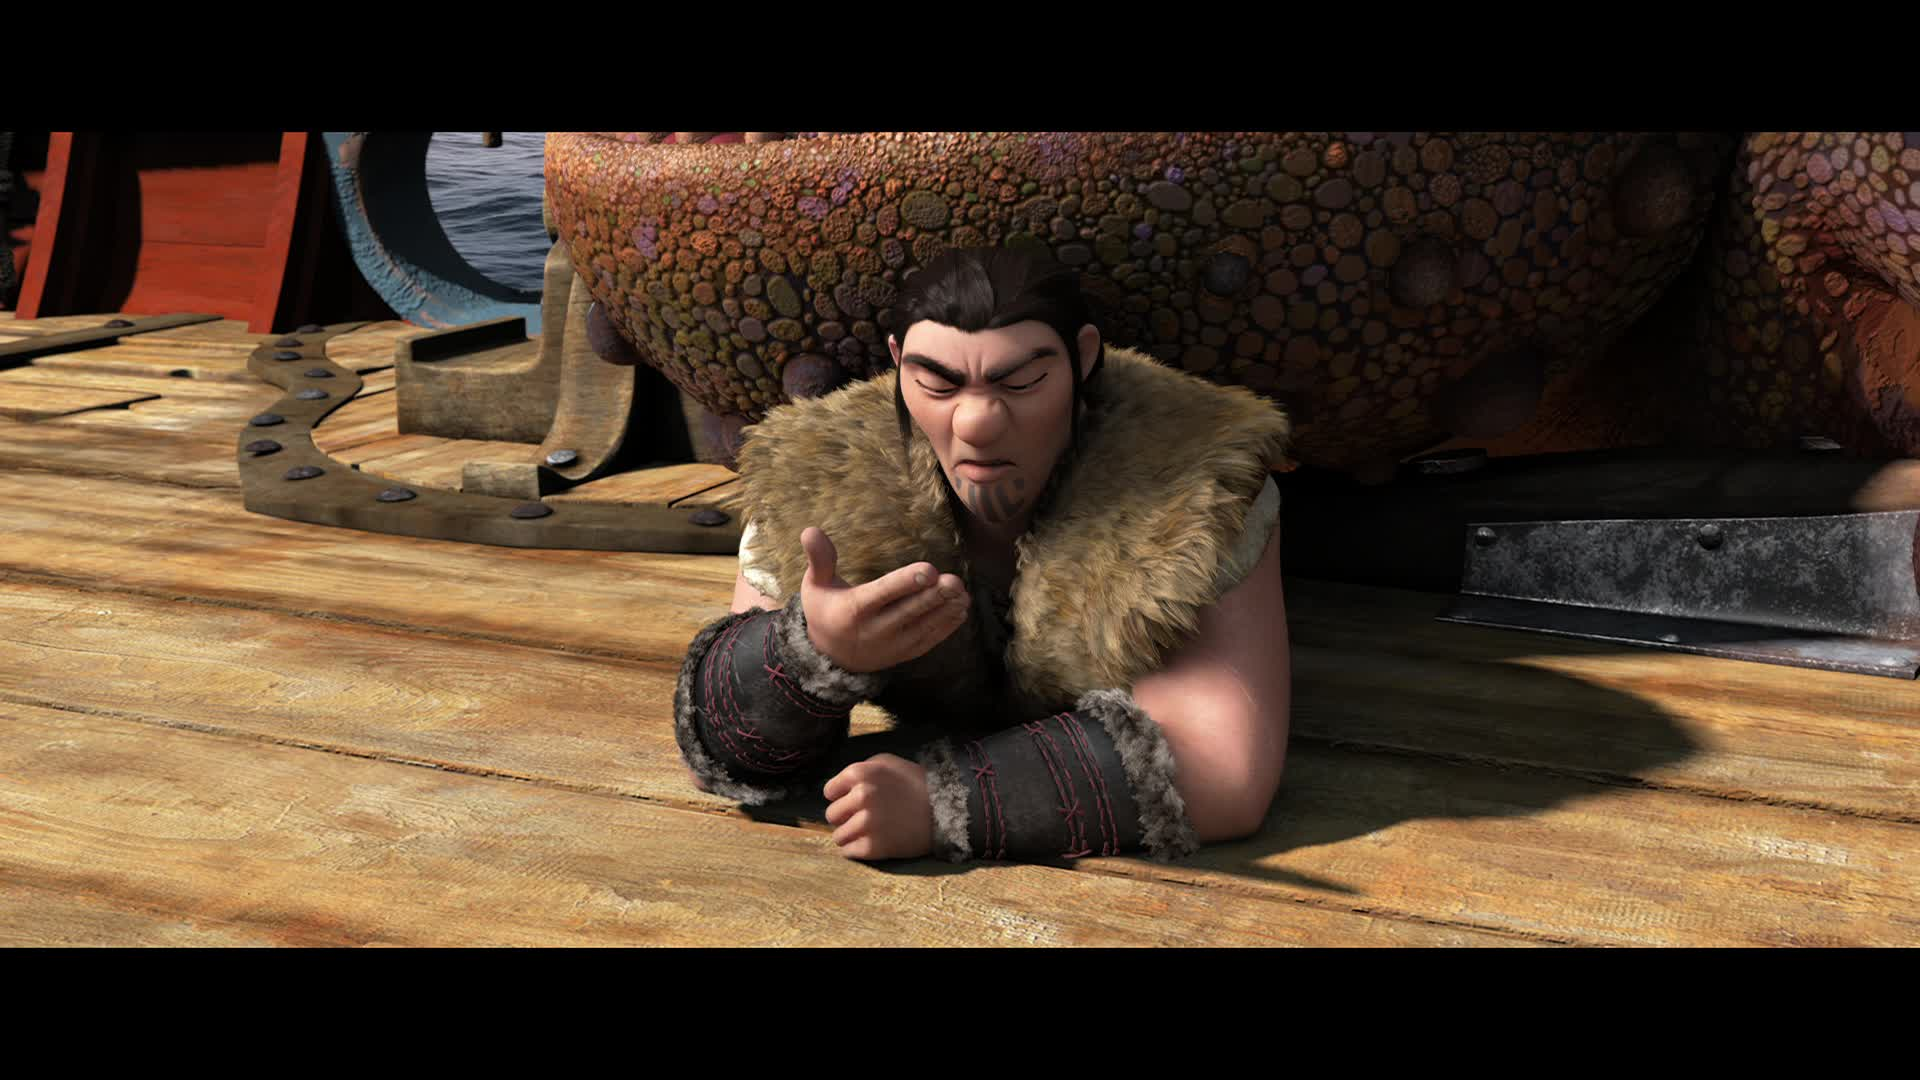 an overview of the movie how to train your dragon Film review how to train your dragon 2 this image released by dreamworks  animation shows a scene from how to train your dragon 2.